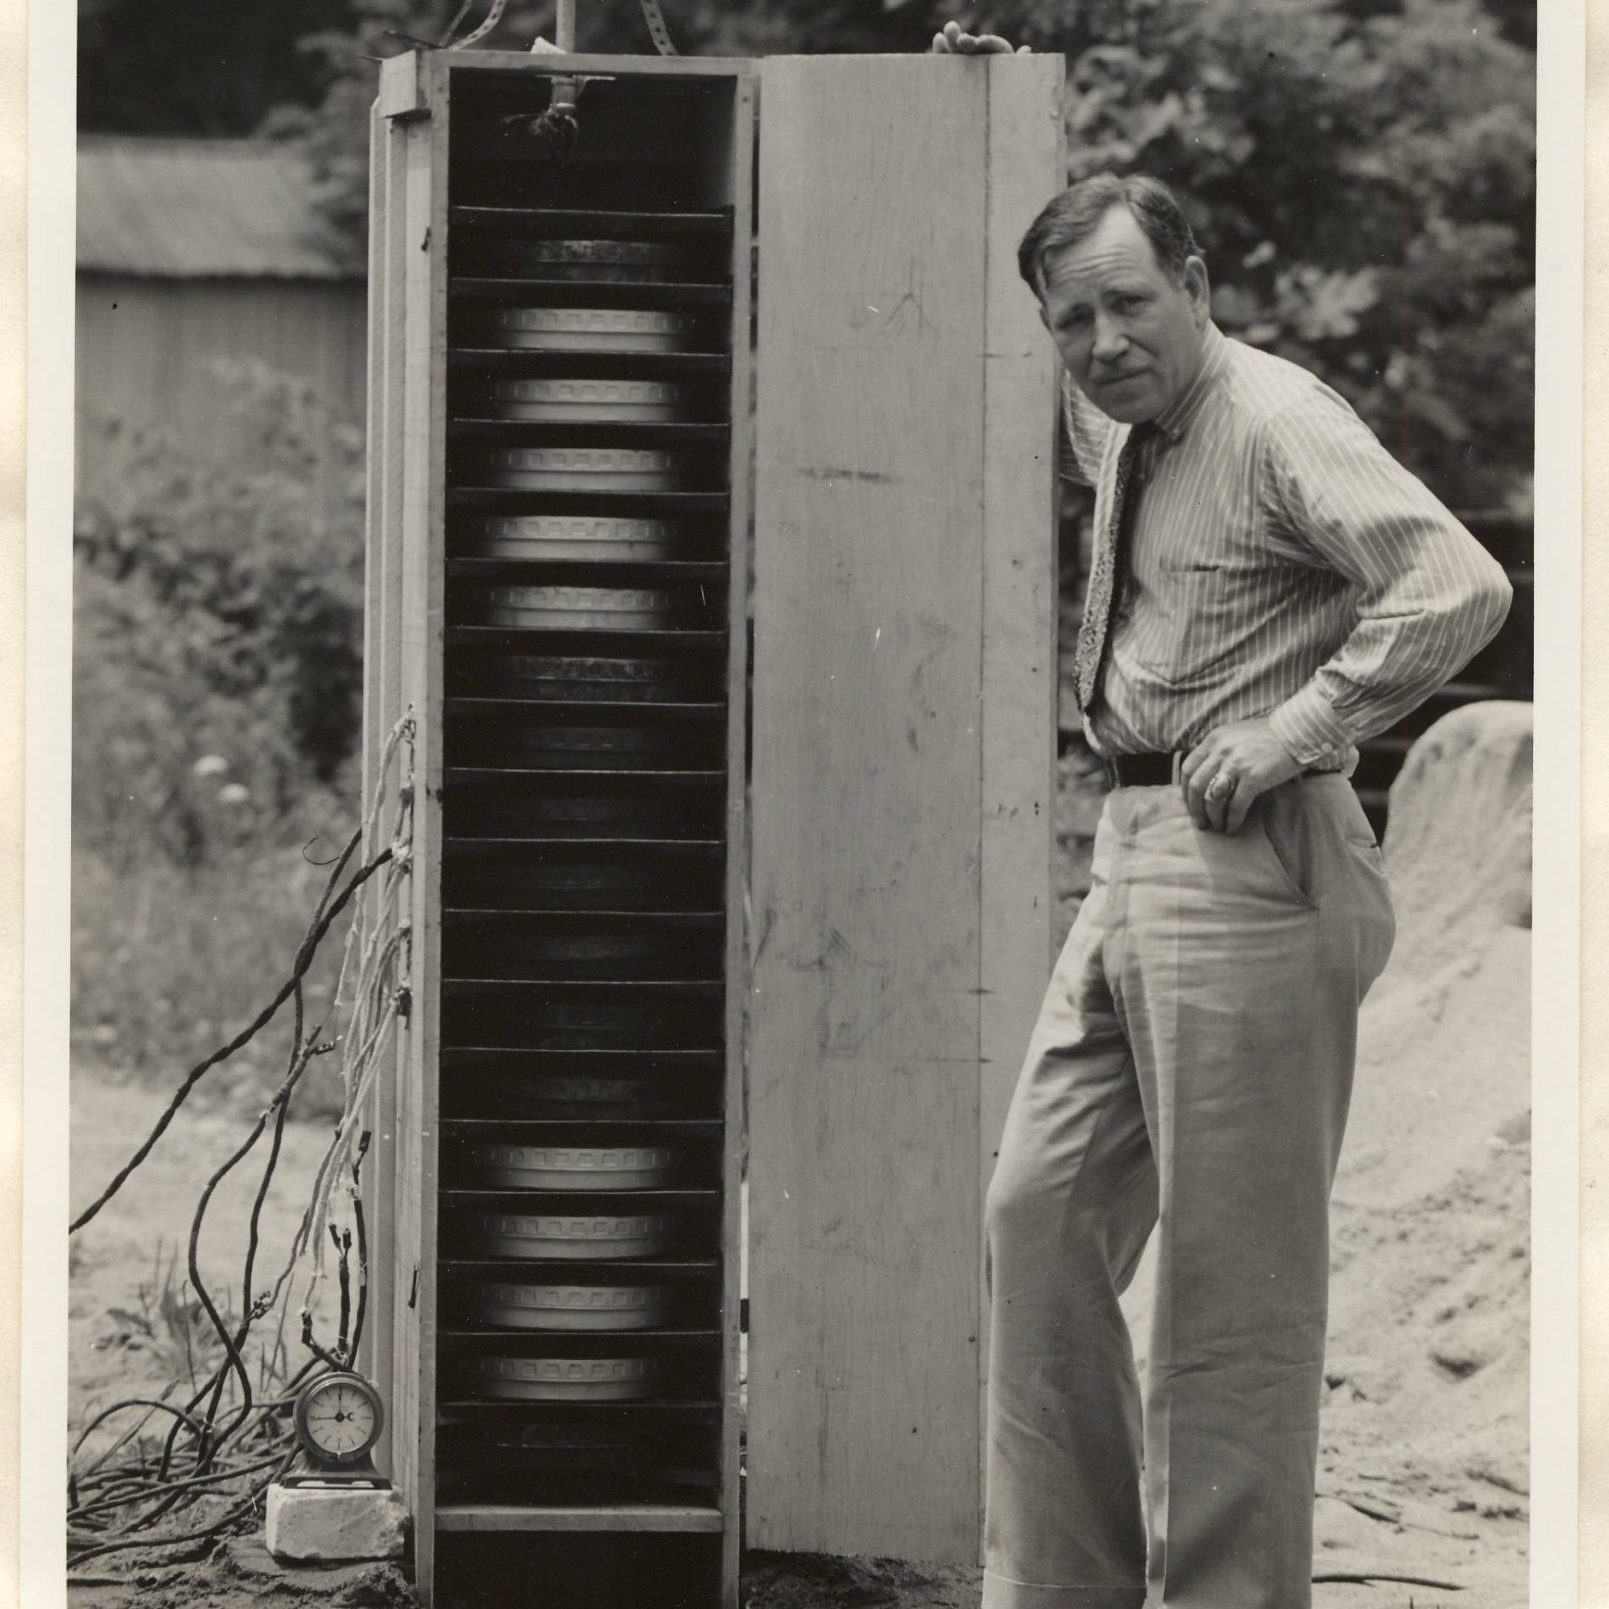 John Bradley with film cabinet during tests, 1937. (Collection BRDLY)